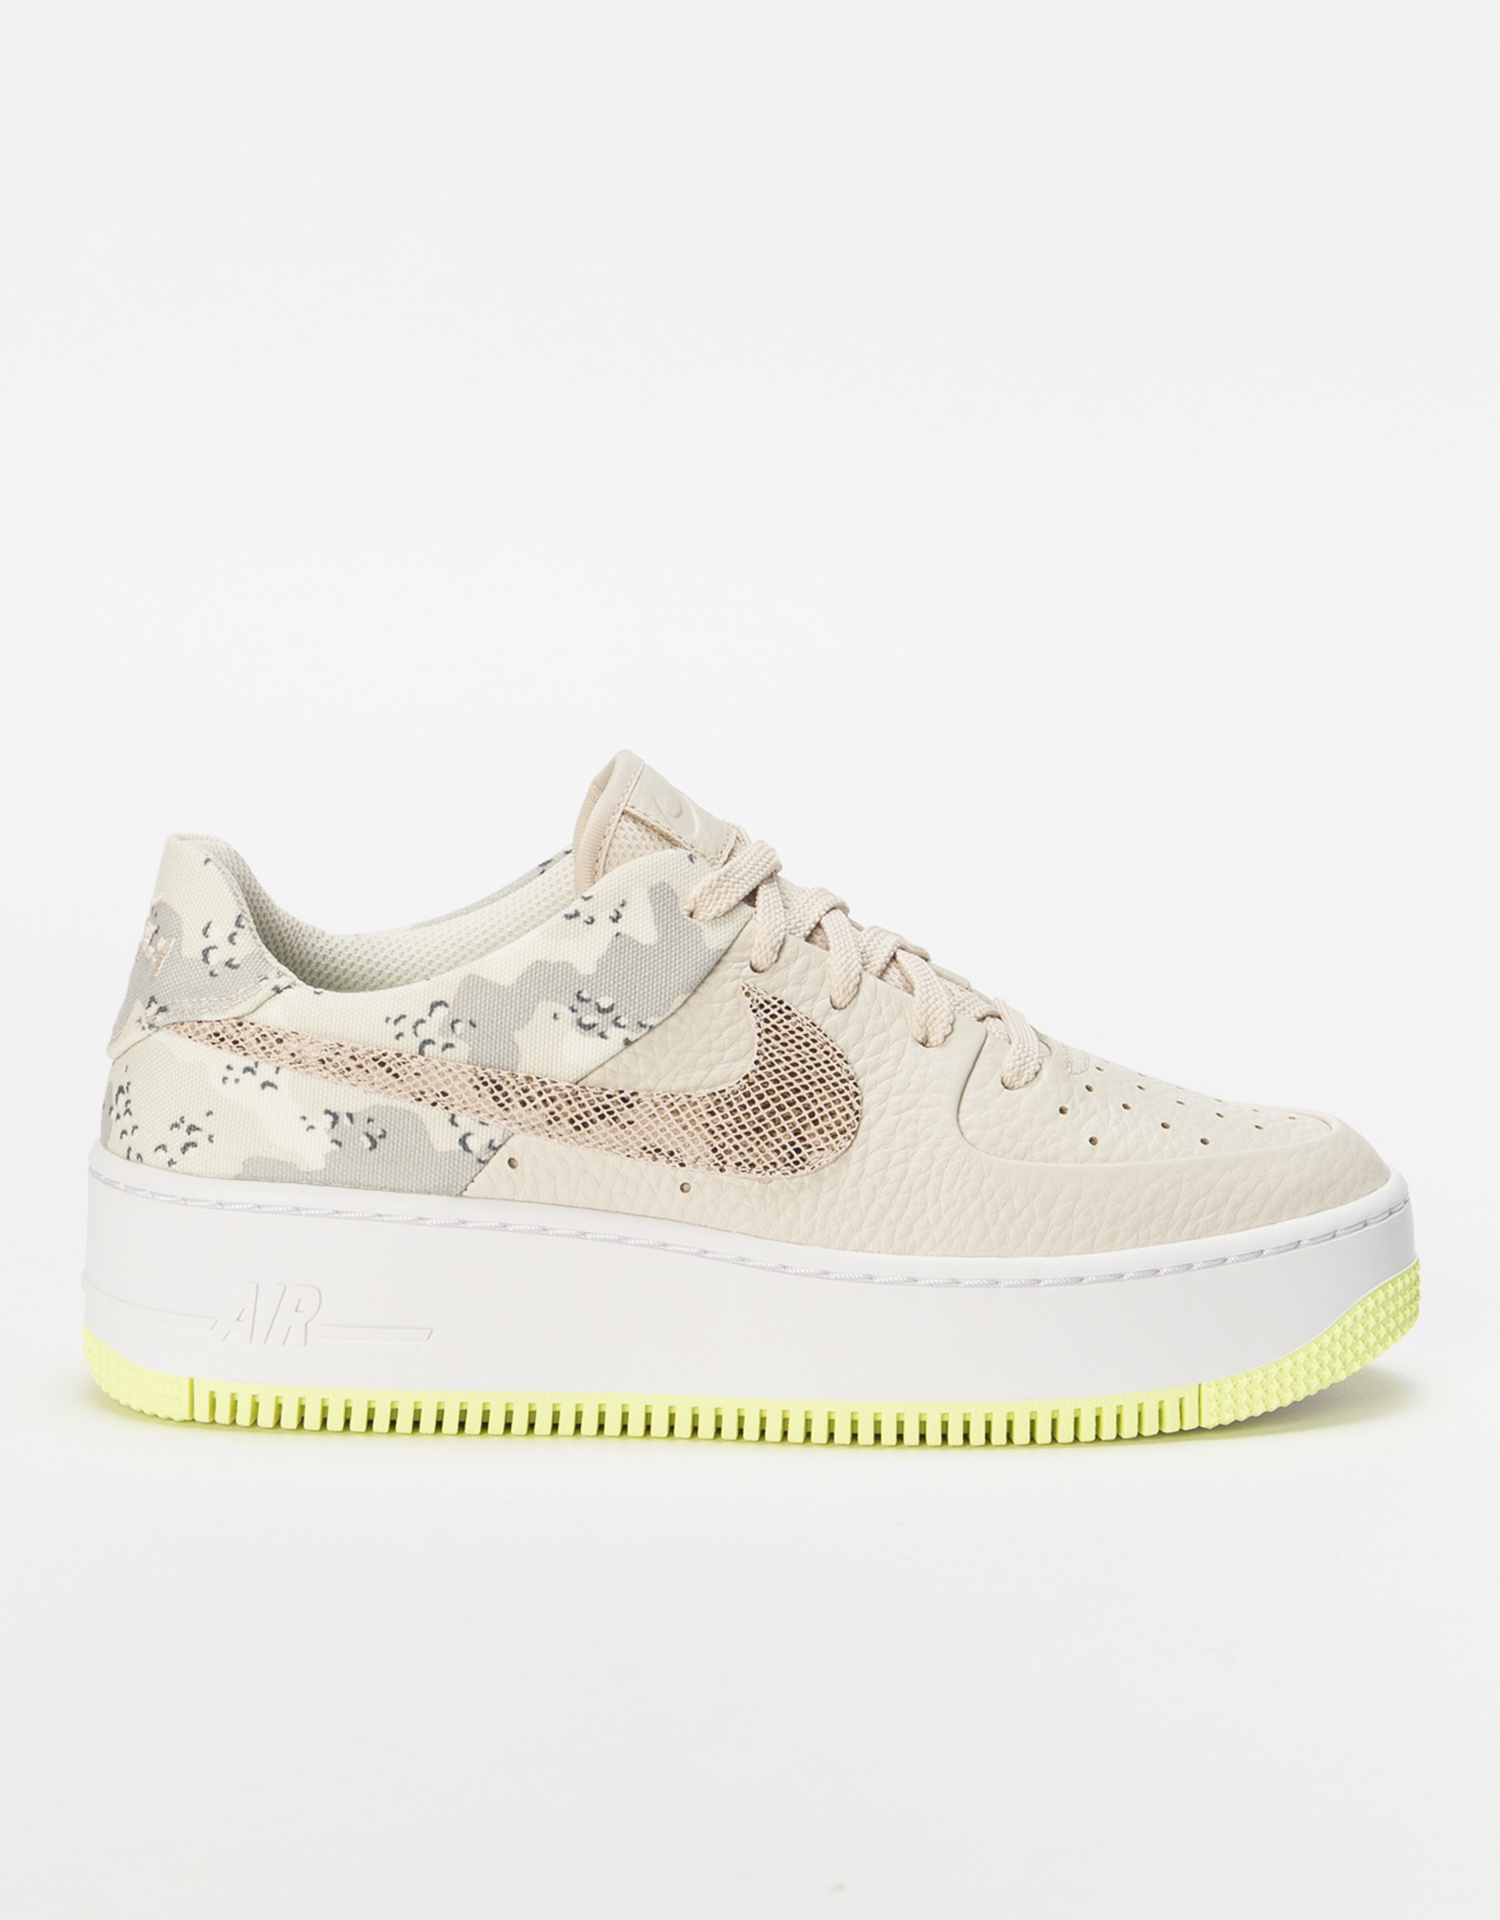 Nike Air Force 1 Sage Low Premium lt orewood brn/moon particle-white